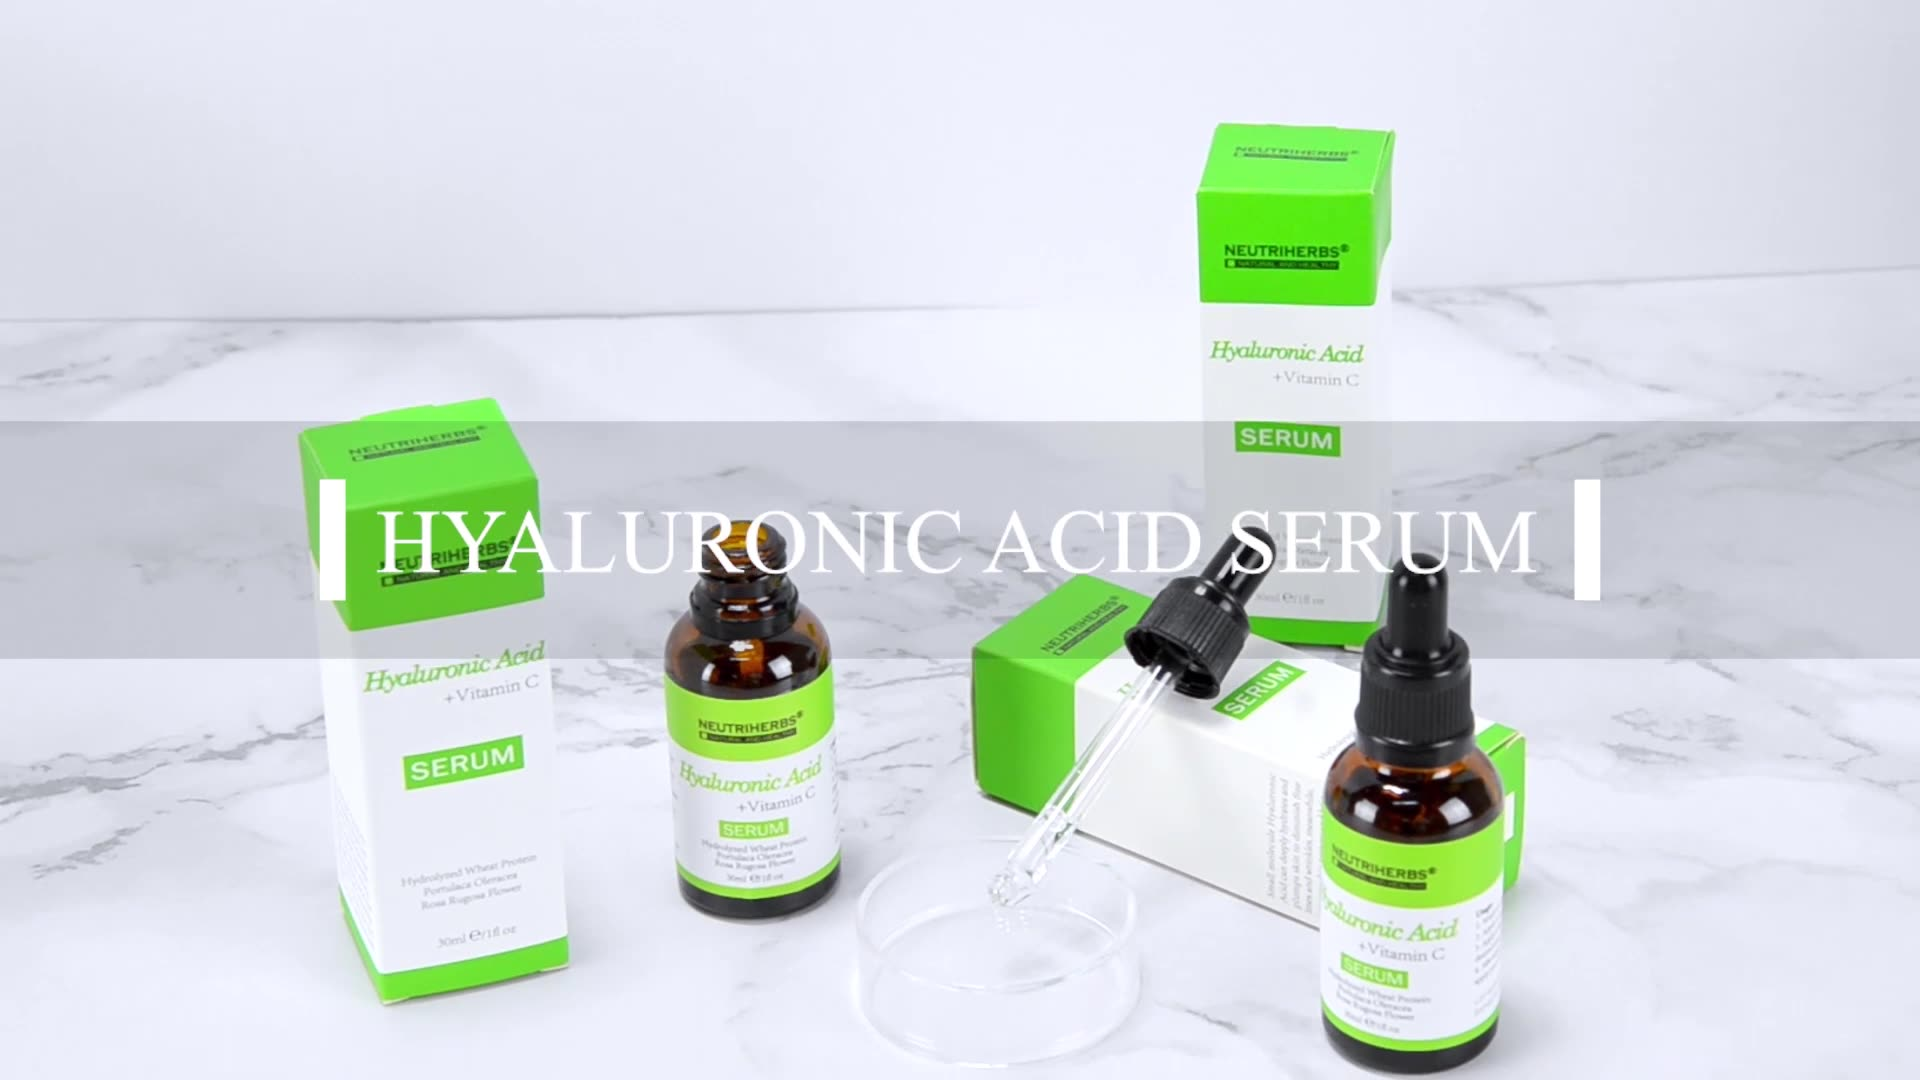 Top Selling Collagen Anti Wrinkle Hyaluronic Acid Glutathione Serum Organic Vitamin C Serum For Face